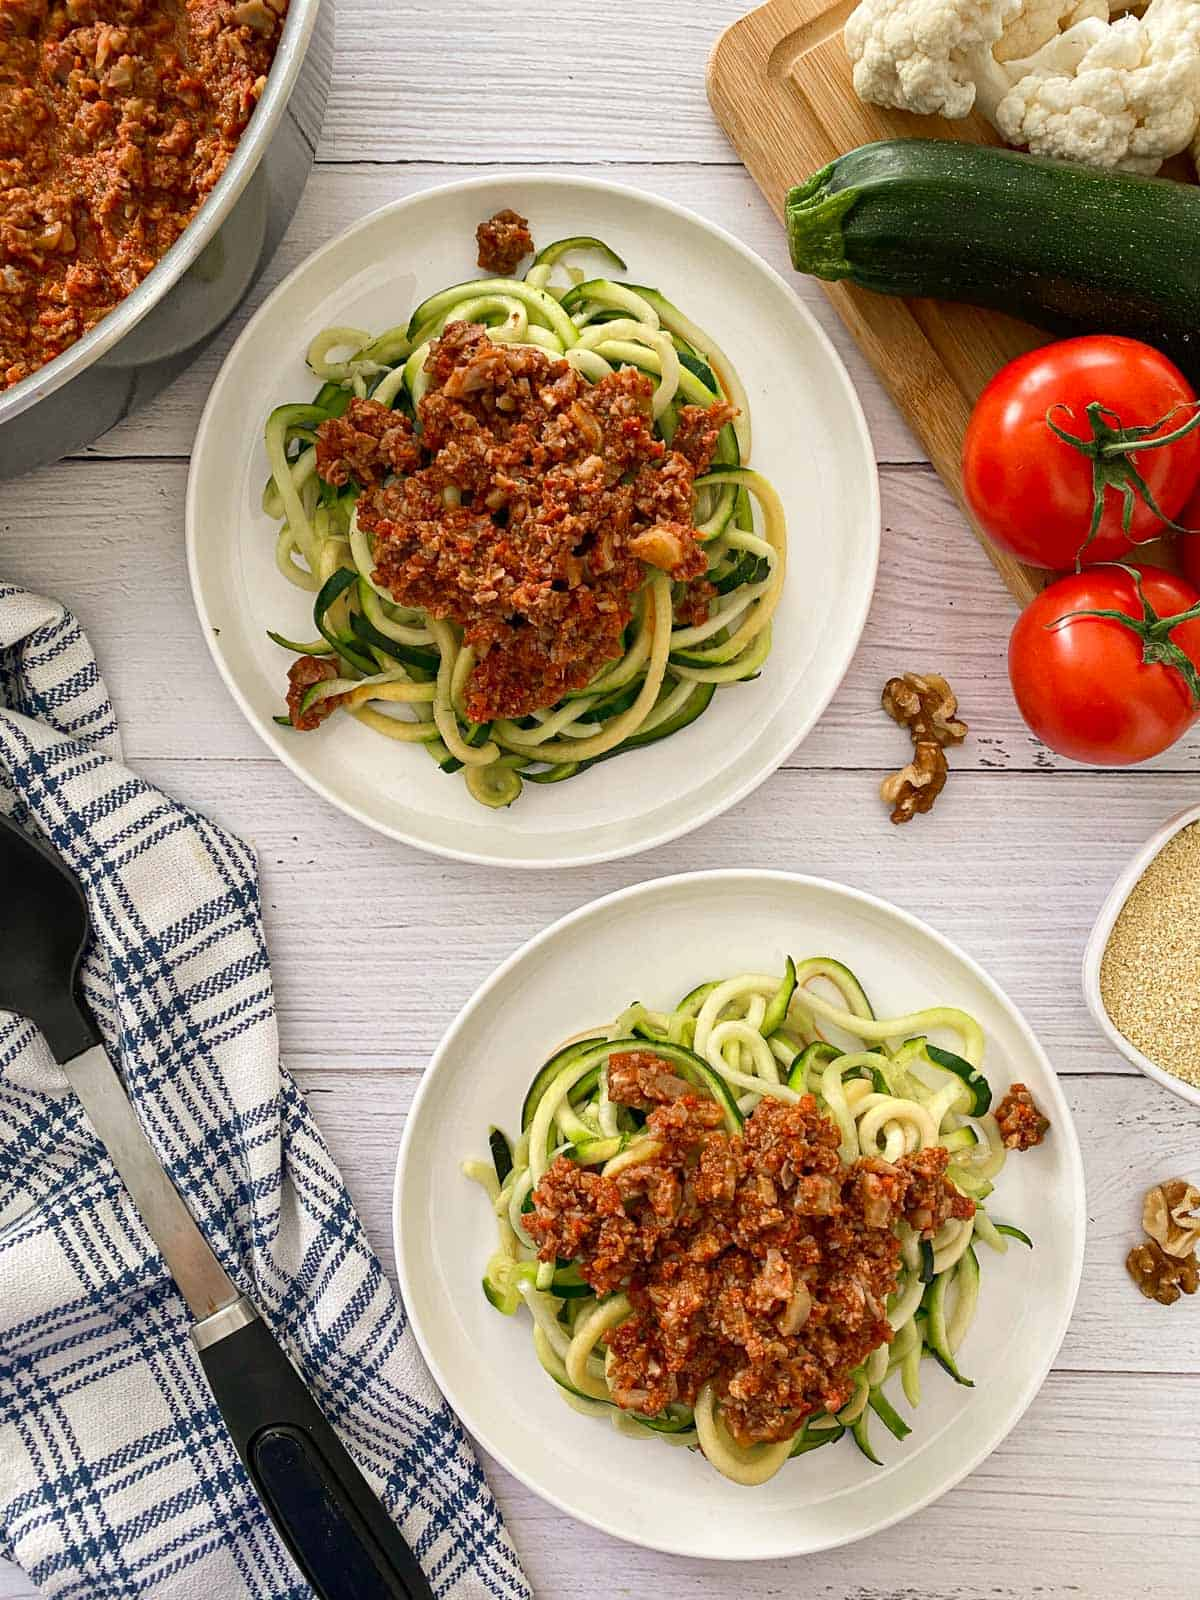 Two plates of zoodles with vegan bolognese sauce on top.